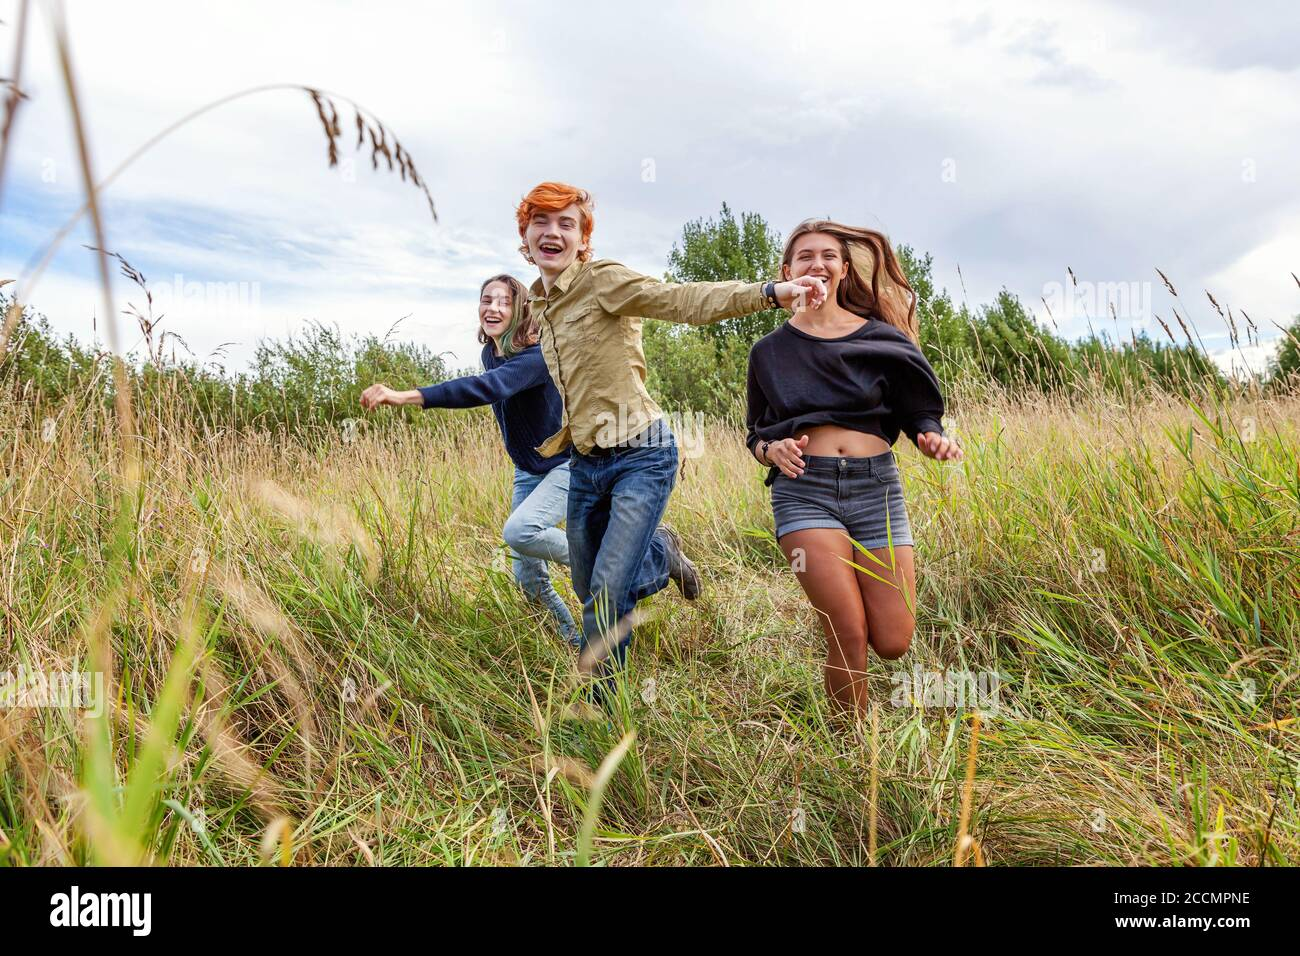 Summer holidays vacation happy people concept. Group of three friends boy and two girls running and having fun together outdoors. Picnic with friends on road trip in nature Stock Photo